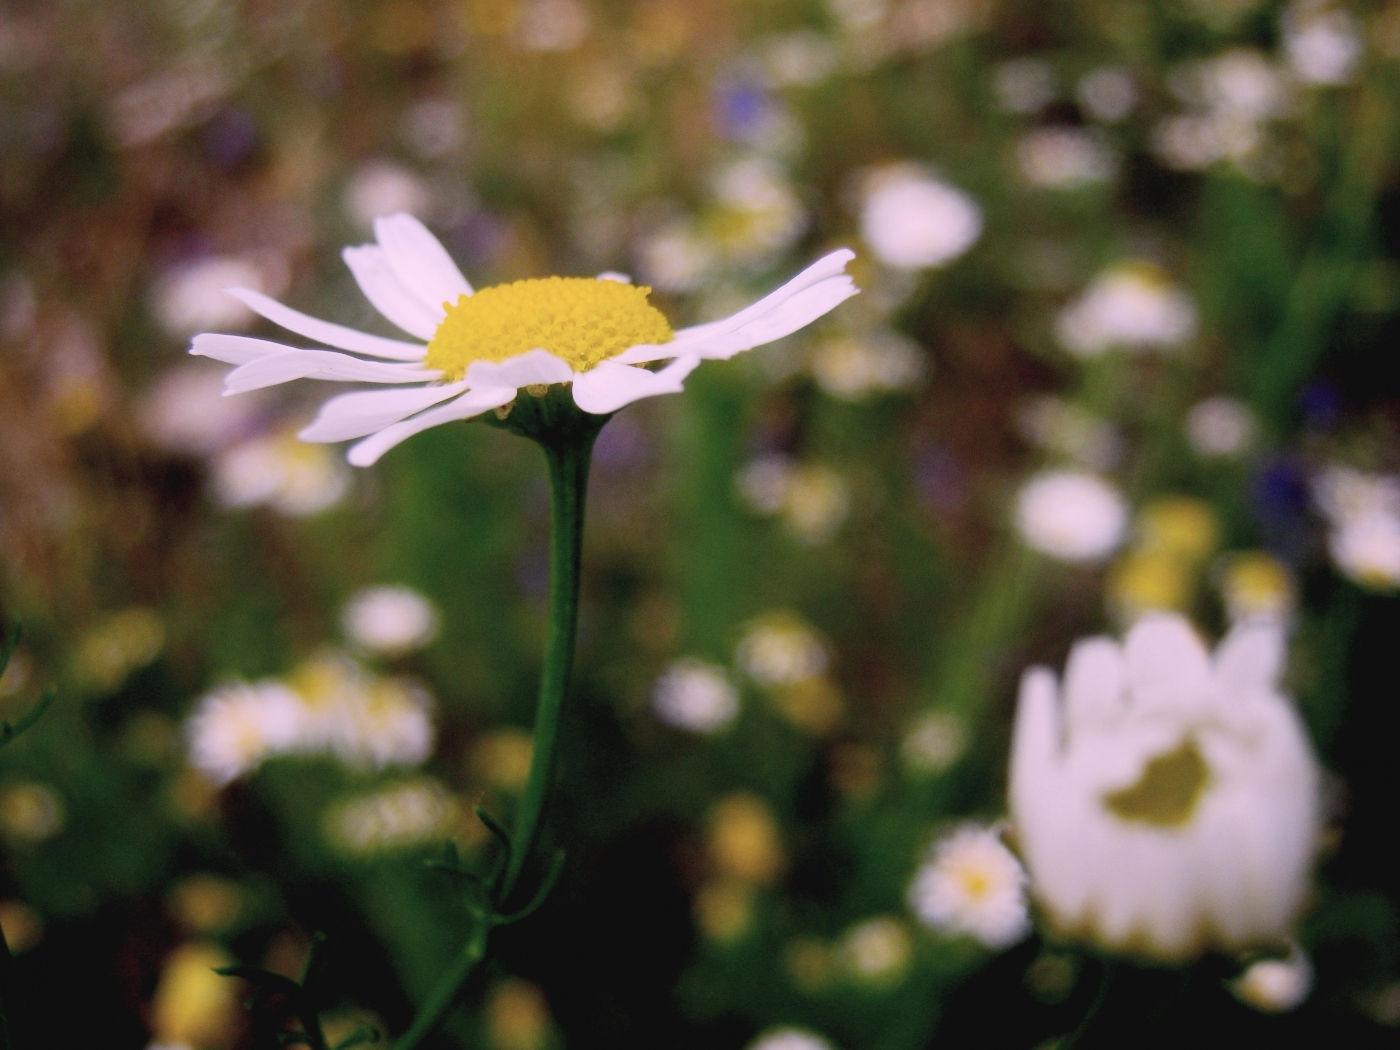 45870 download wallpaper Plants, Flowers, Camomile screensavers and pictures for free